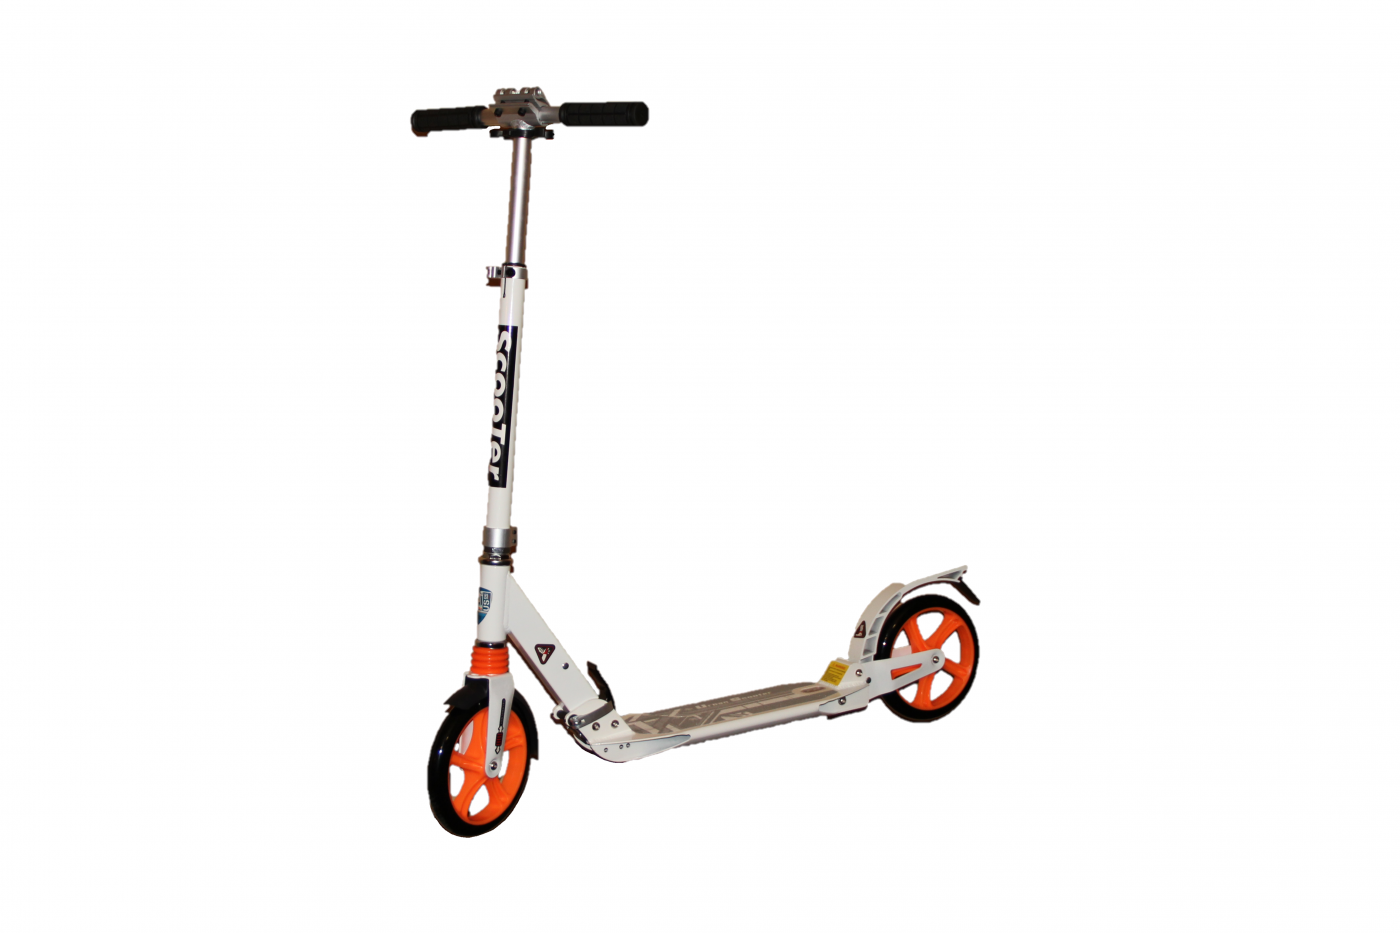 A02728 Самокат Scooter URBAN 9X Town Section белый